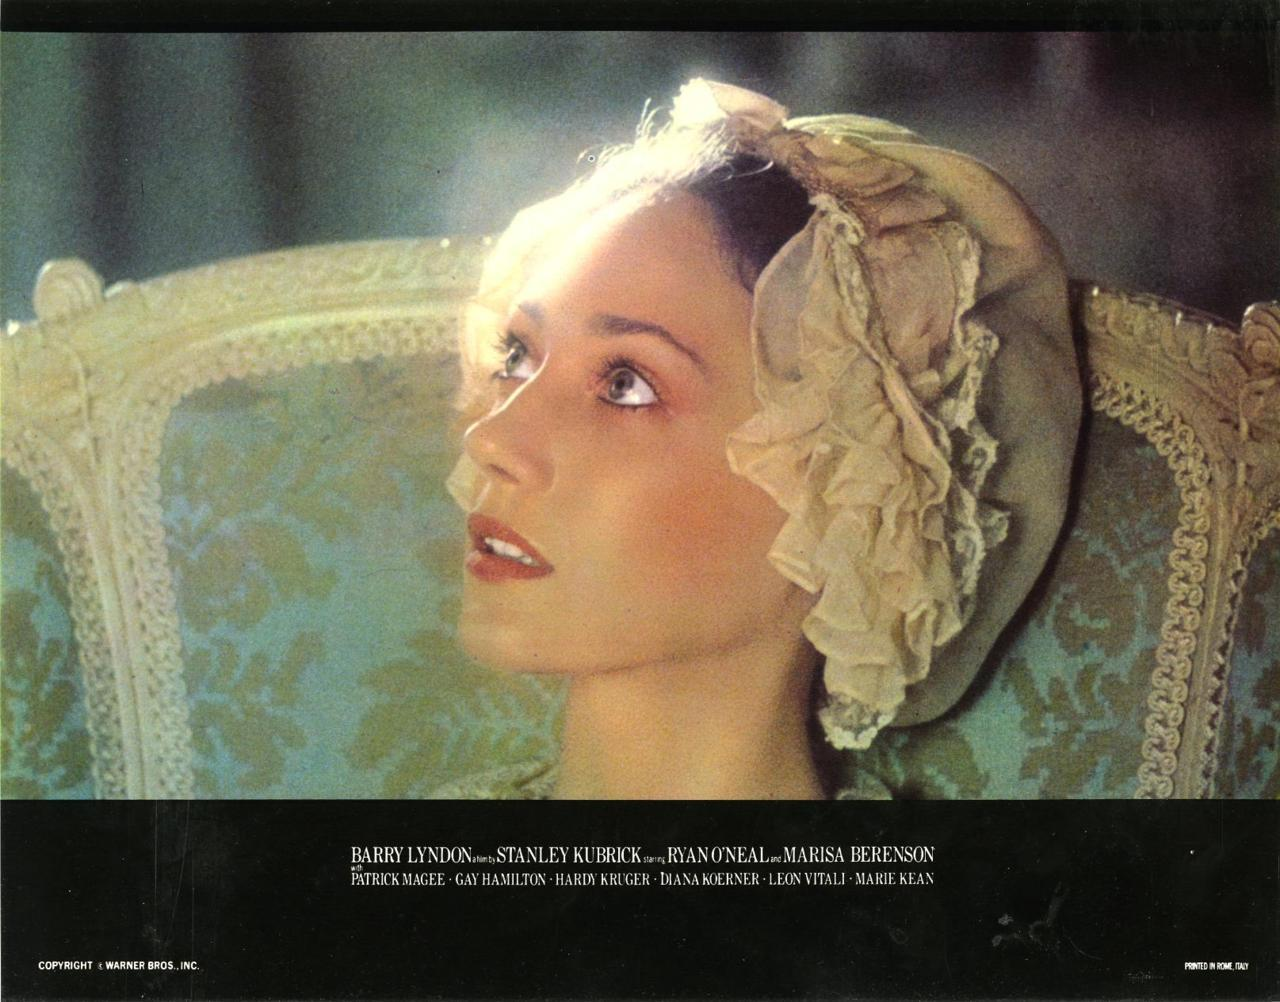 Barry Lyndon lobby card Marisa